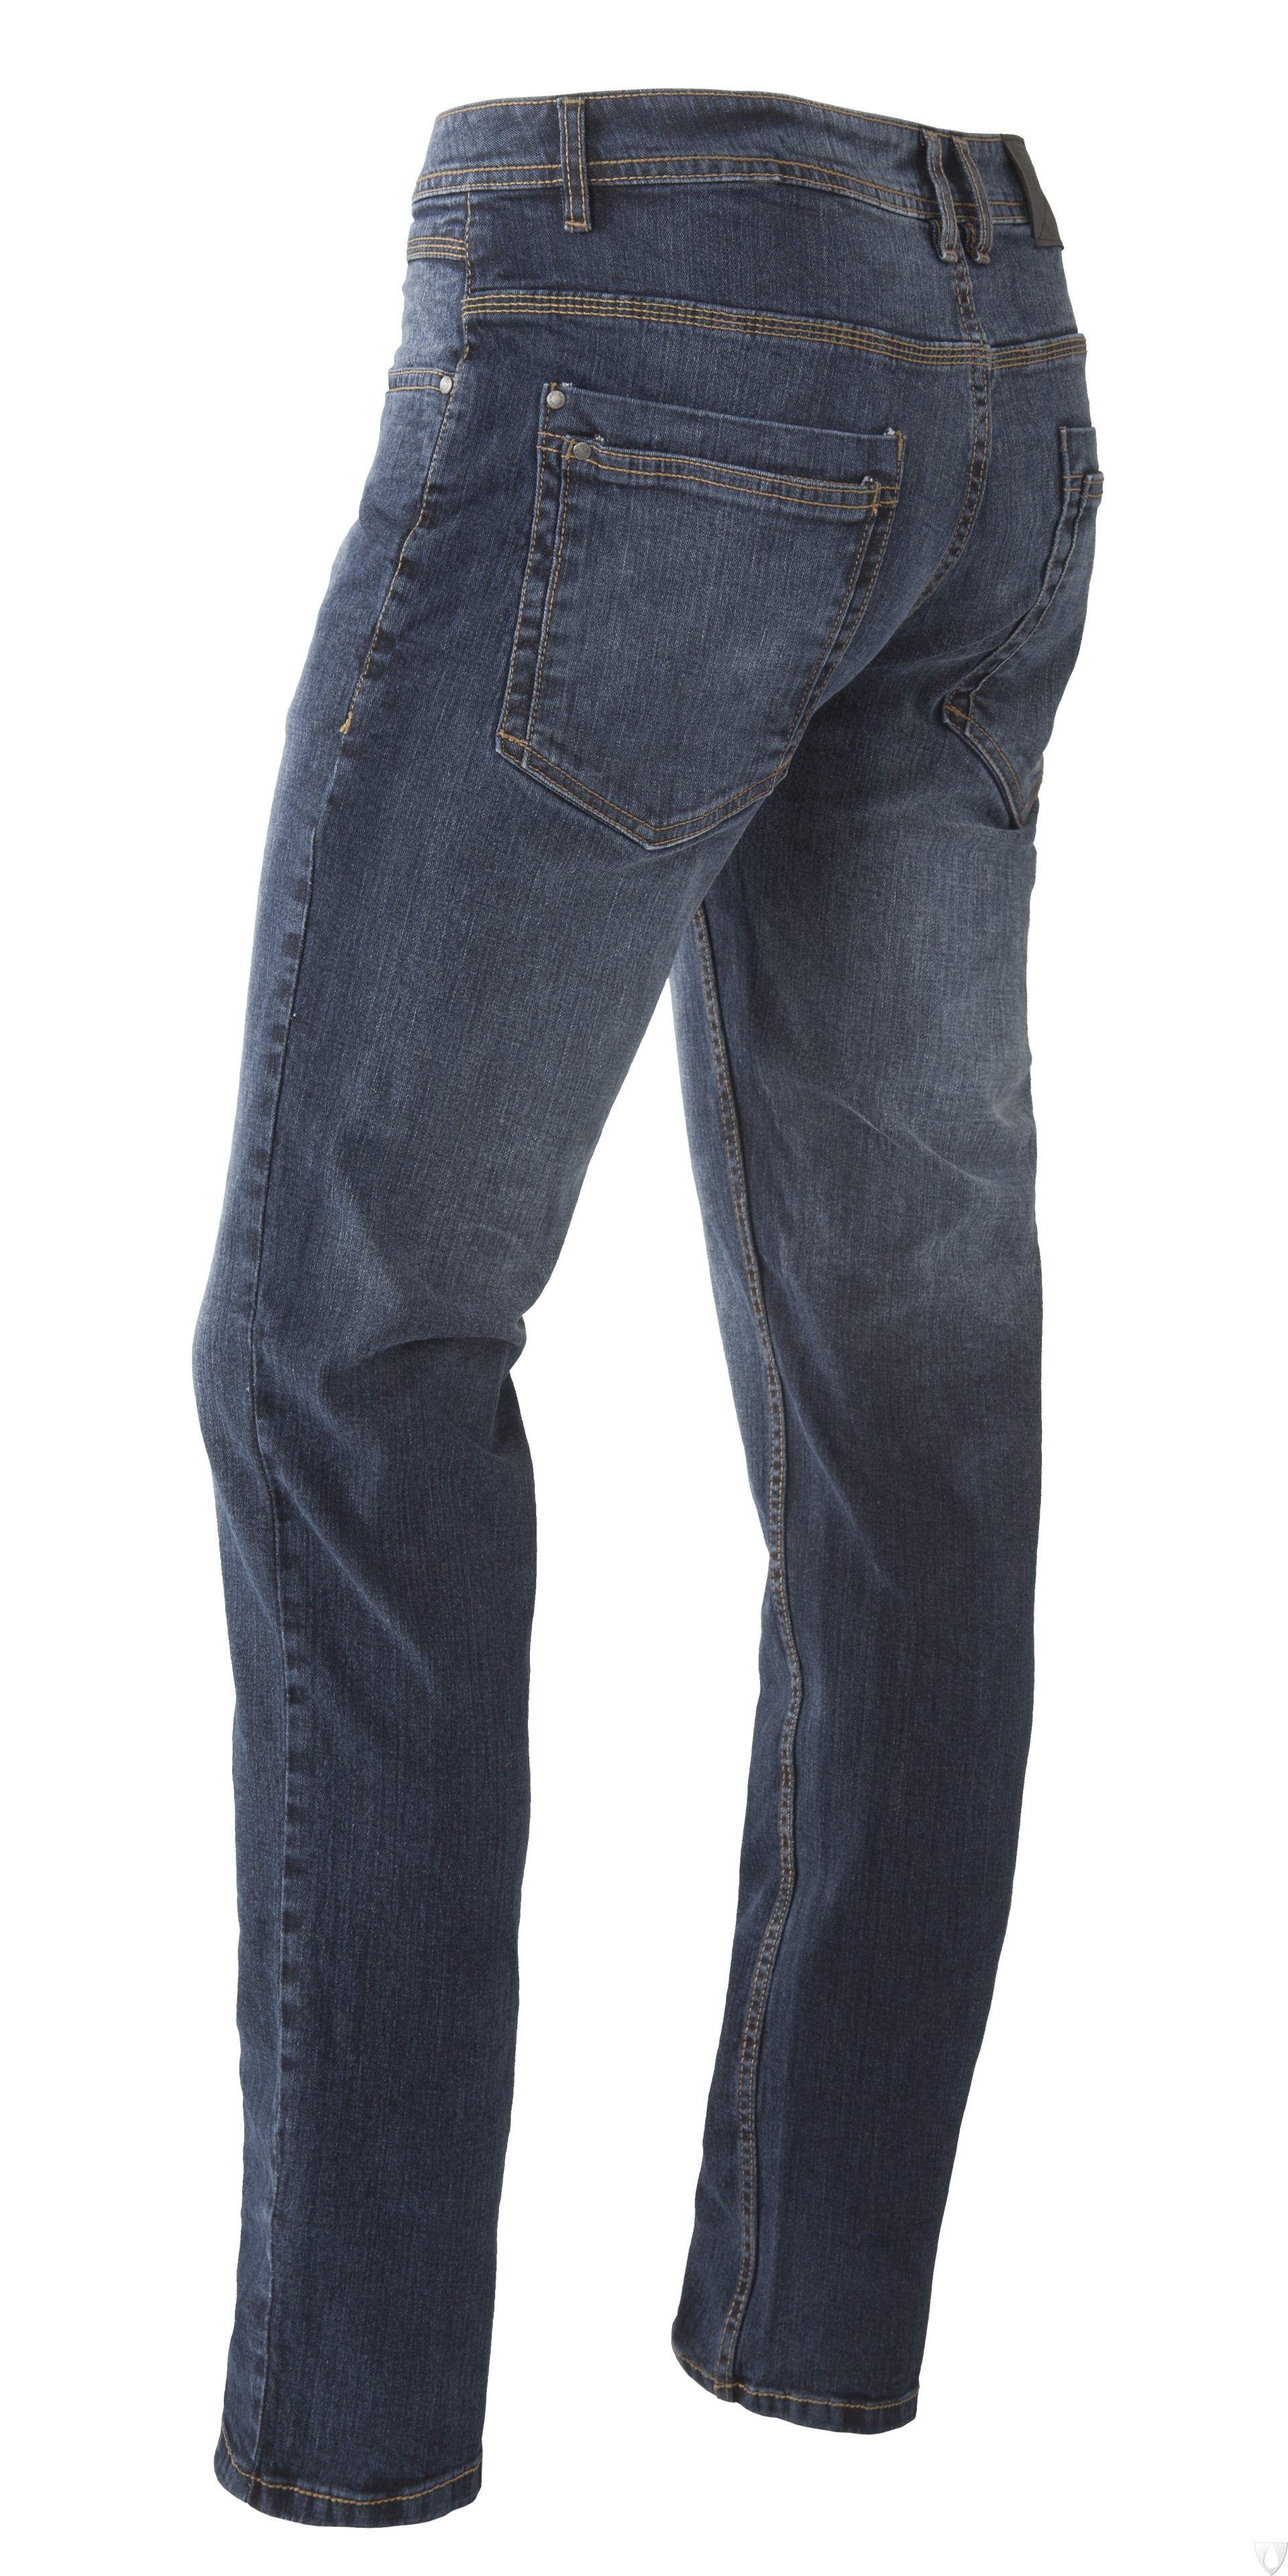 Brams Paris broek Daan Regular 1.3610/R13